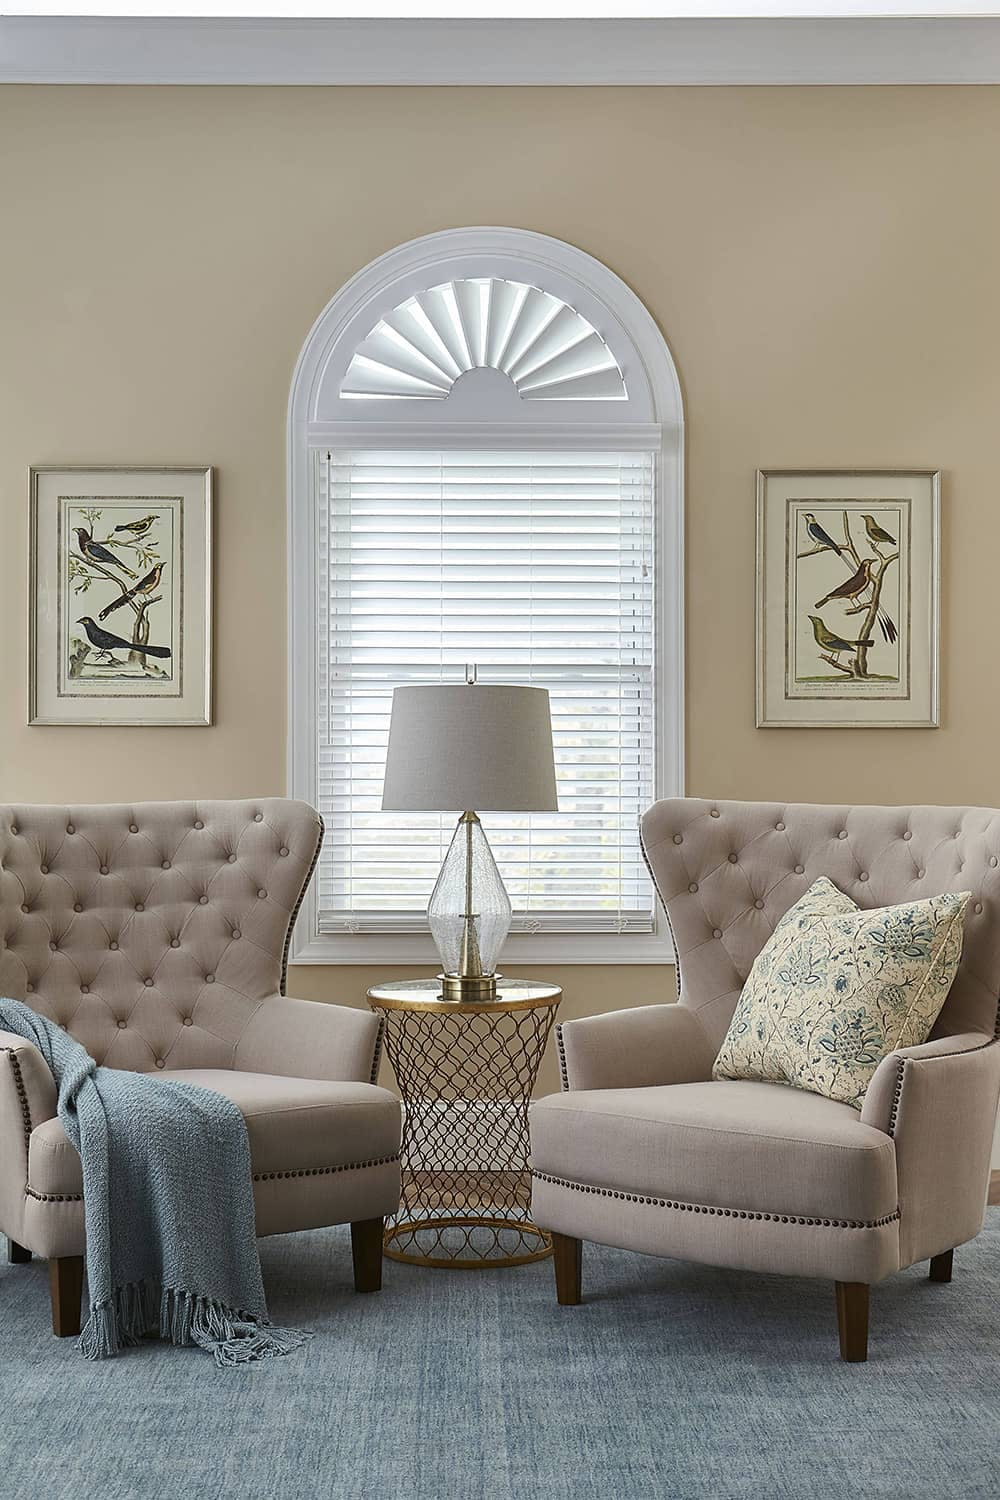 two upholstered chairs in front of arch window with blinds and arch shutter